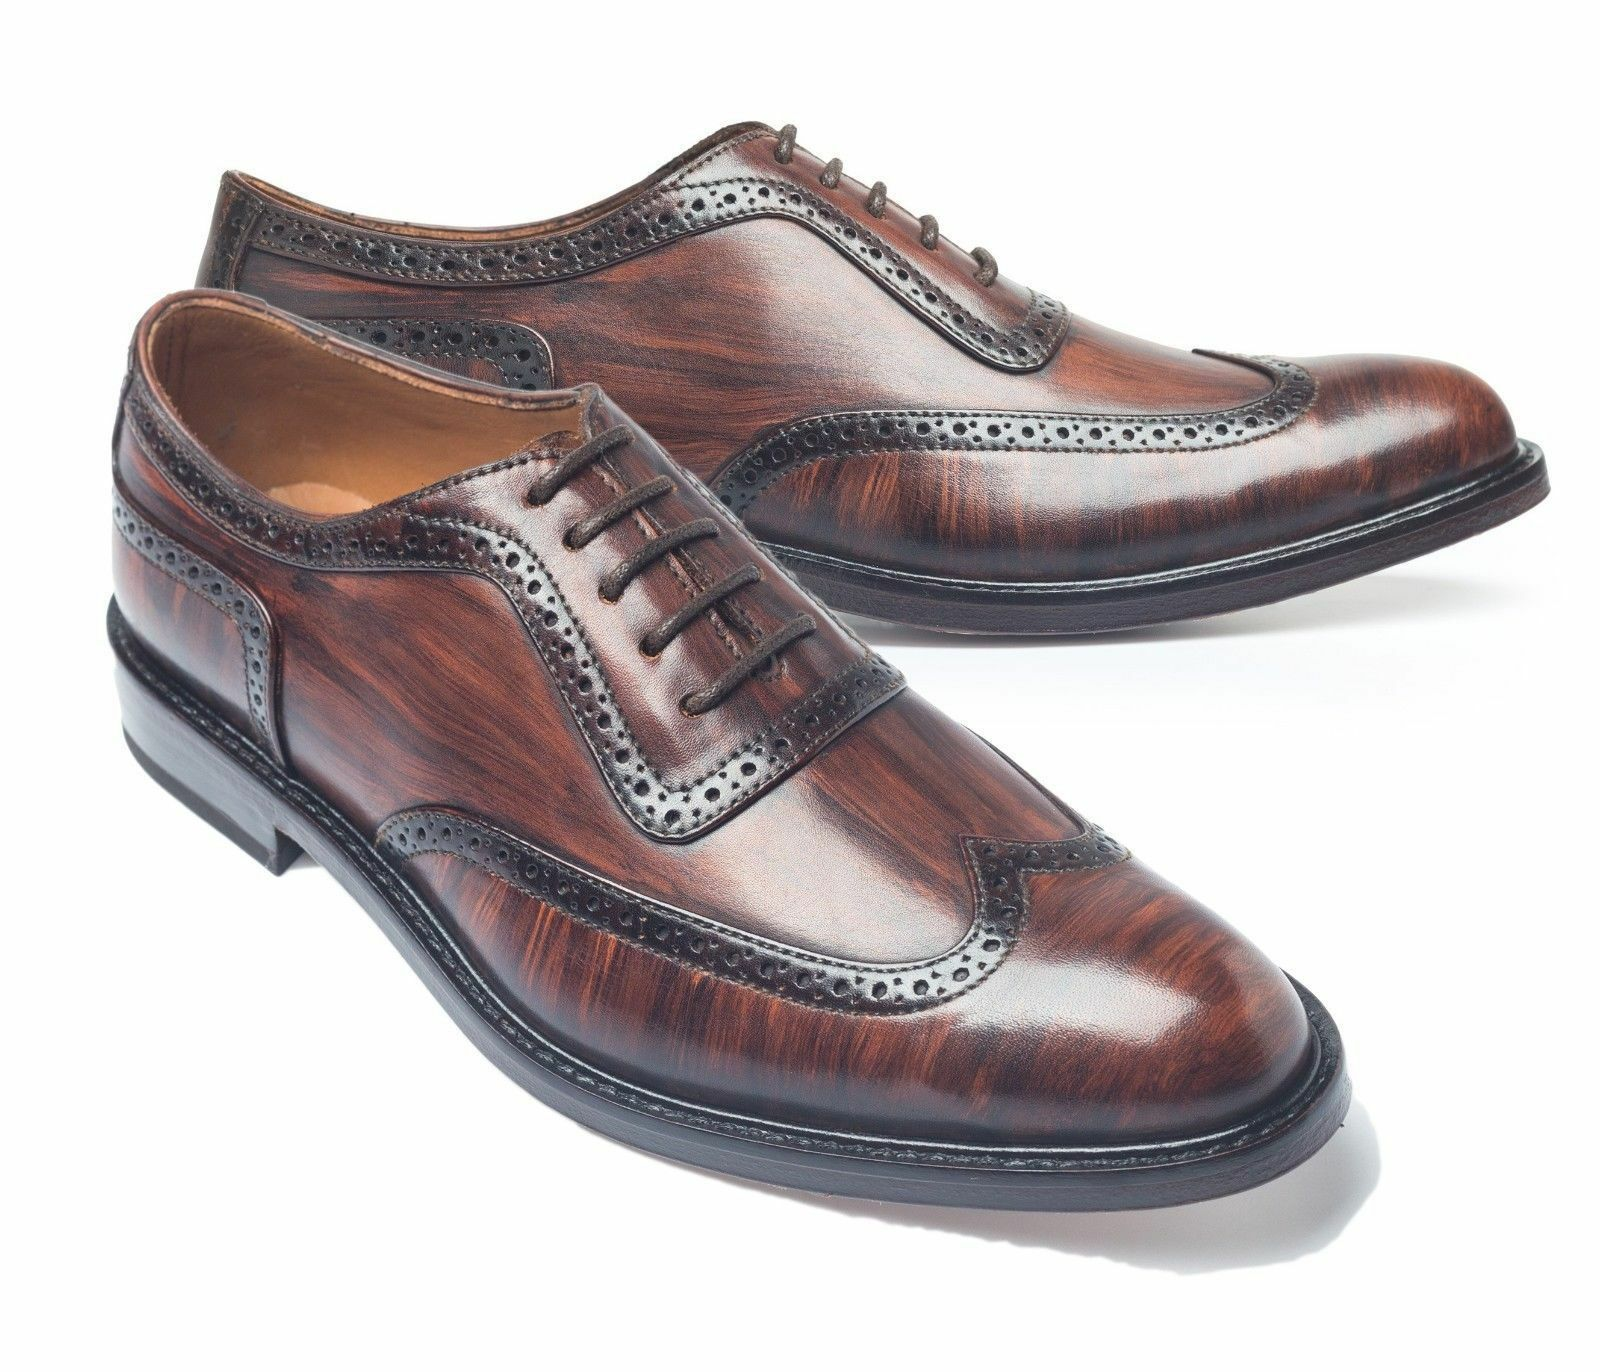 Handmade Wing Tip Oxford Derby Derby Derby Pelle Scarpe Uomo, Hand Stitched Two Tone Formal 594d3a